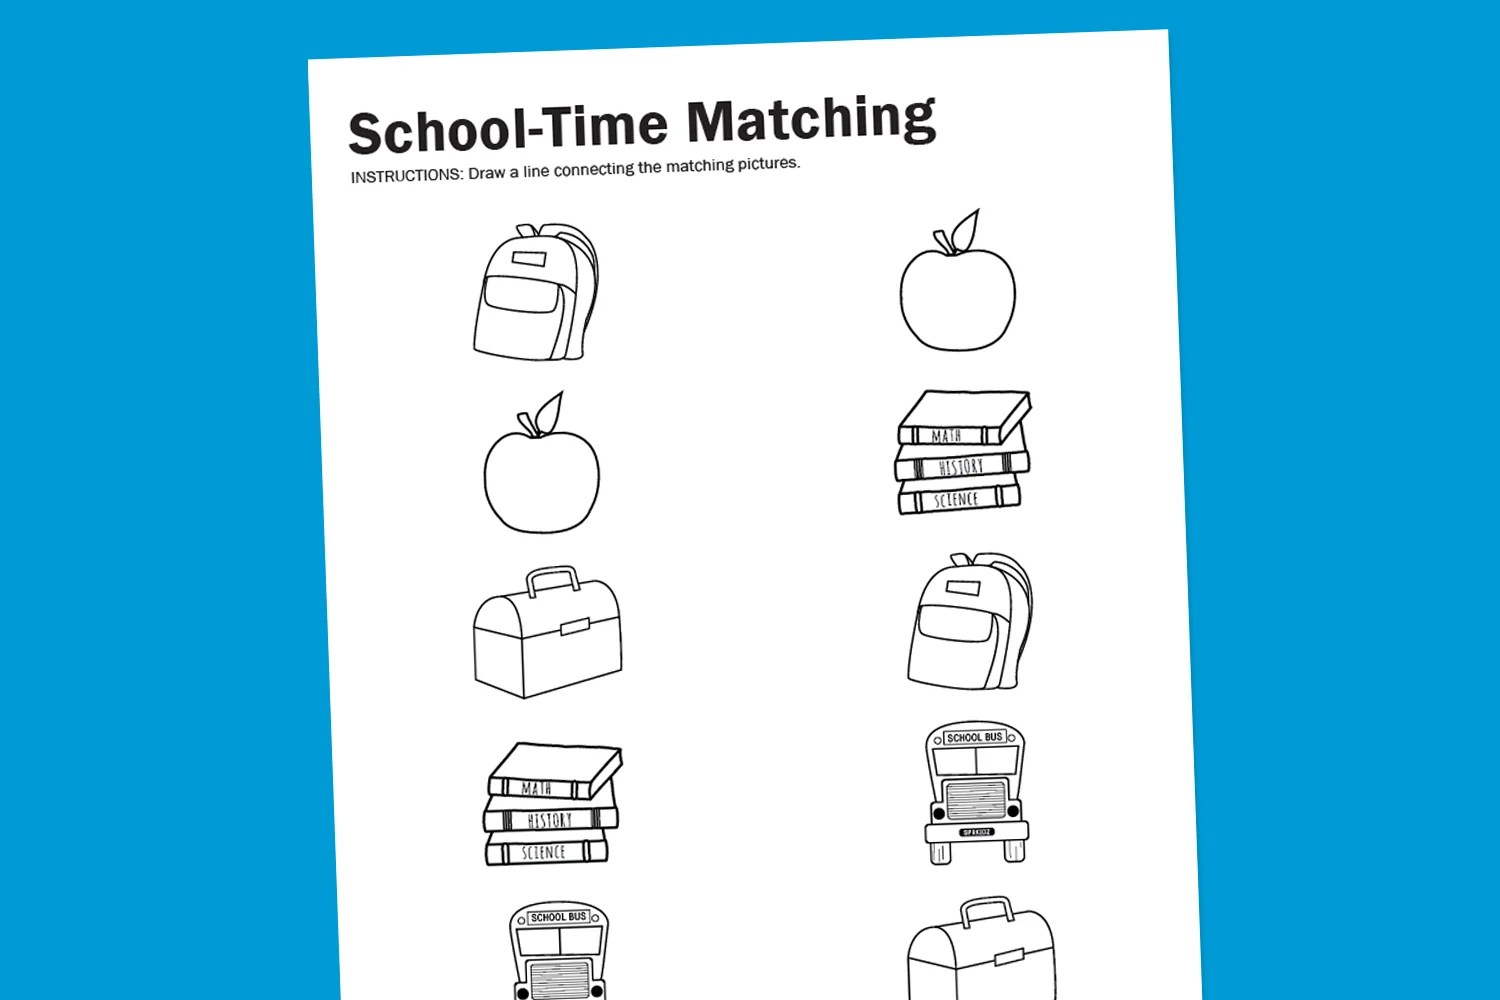 Worksheet Wednesday School Time Matching